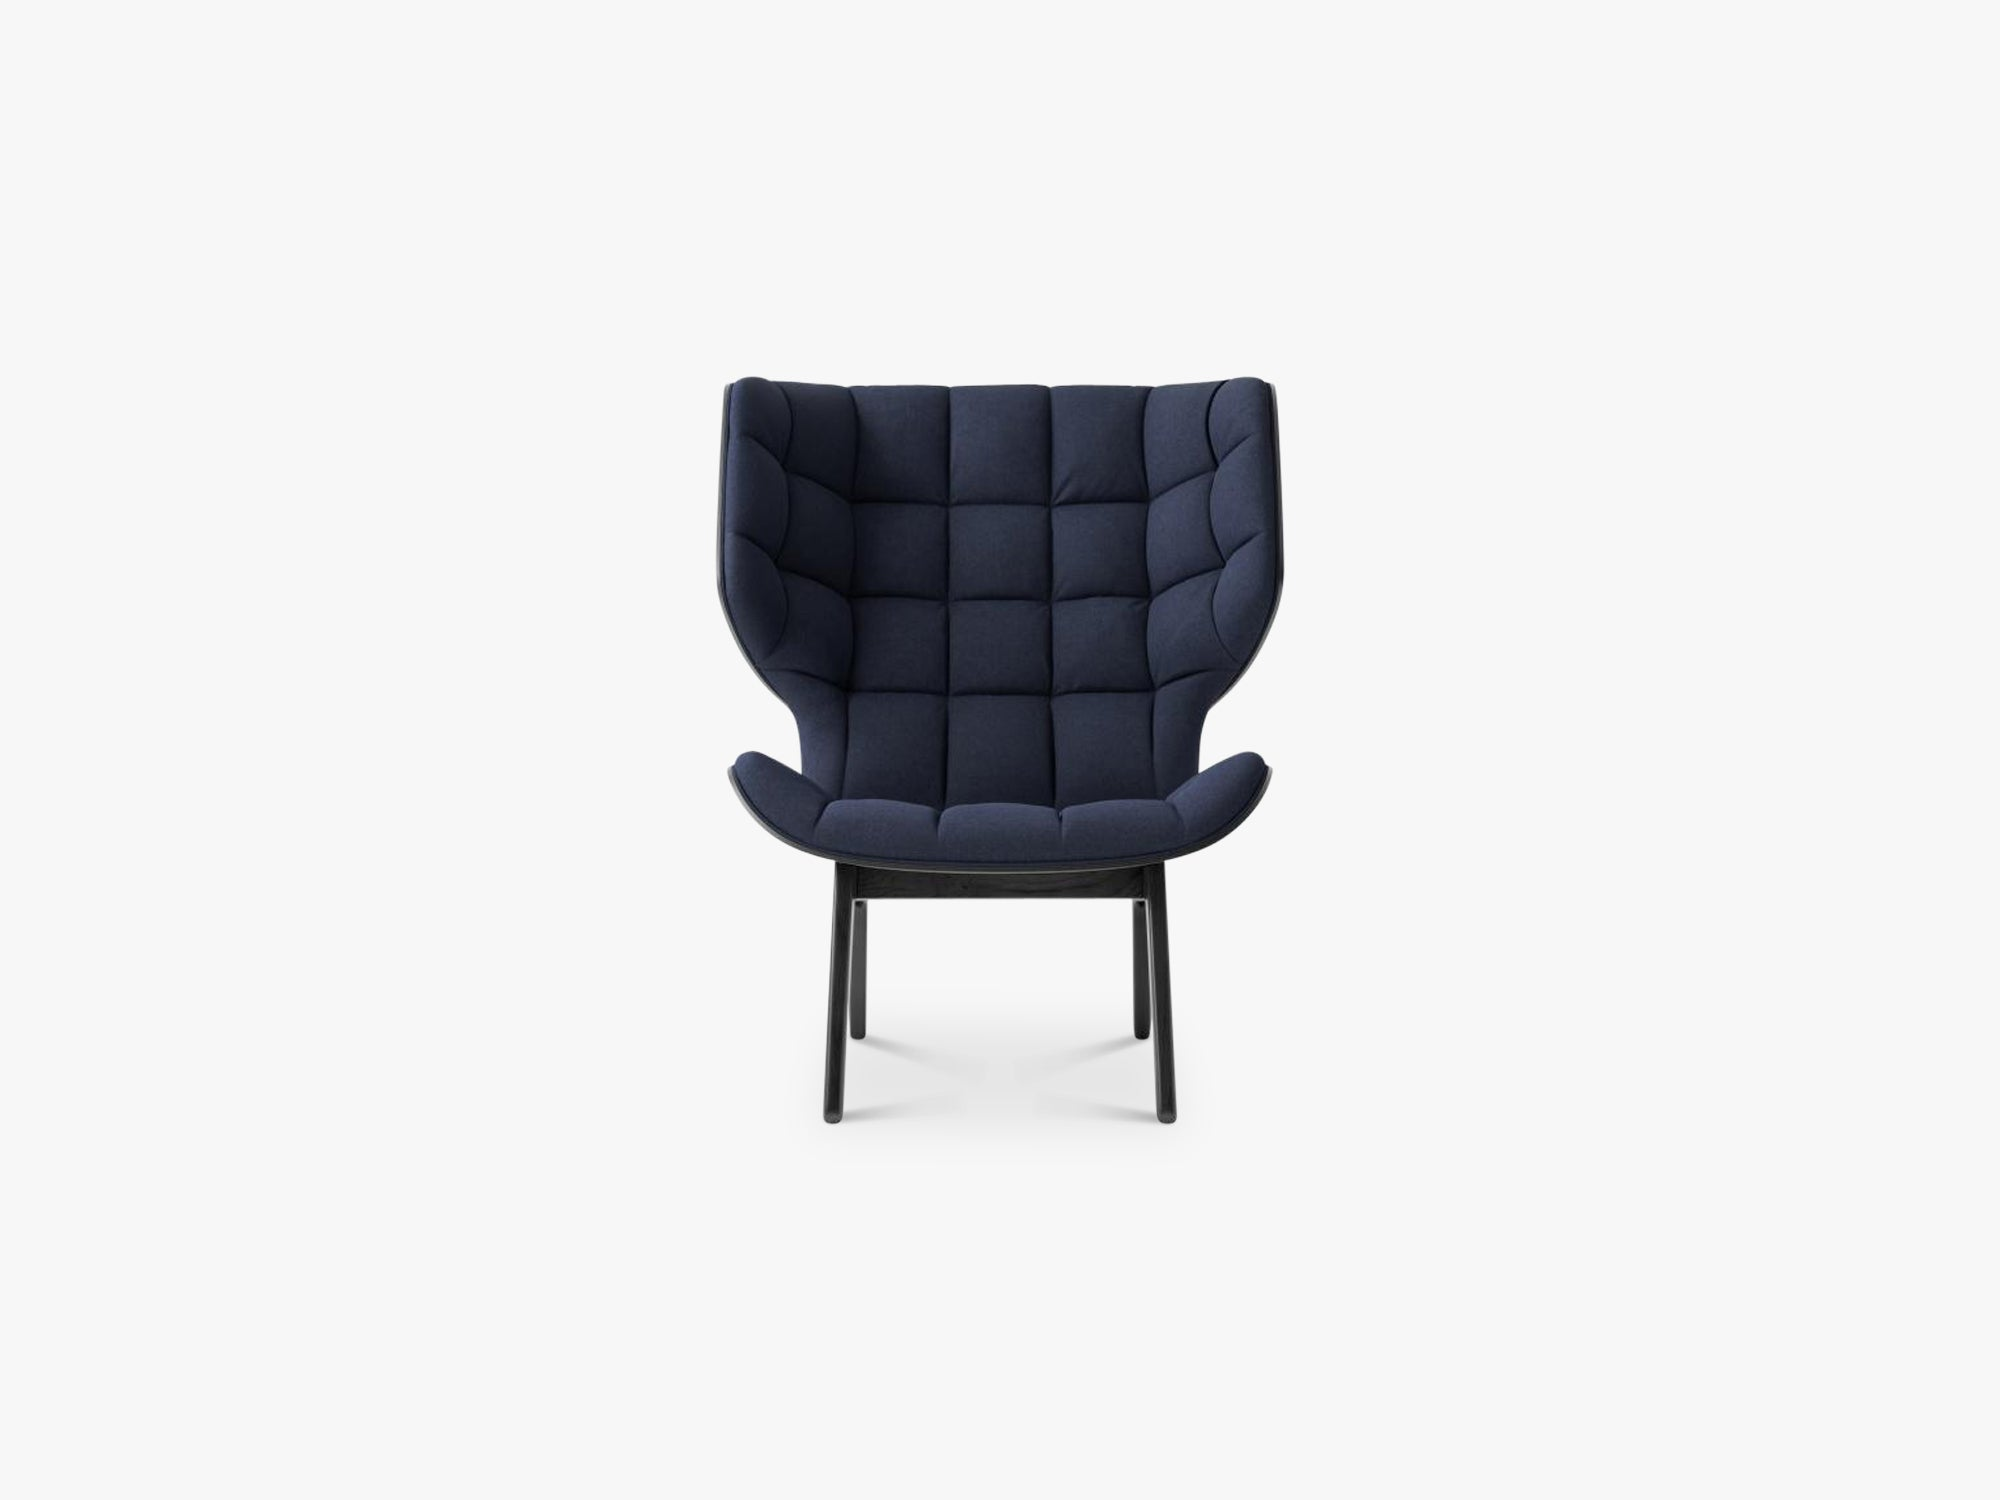 Mammoth Chair, Black/Navy Blue fra NORR11